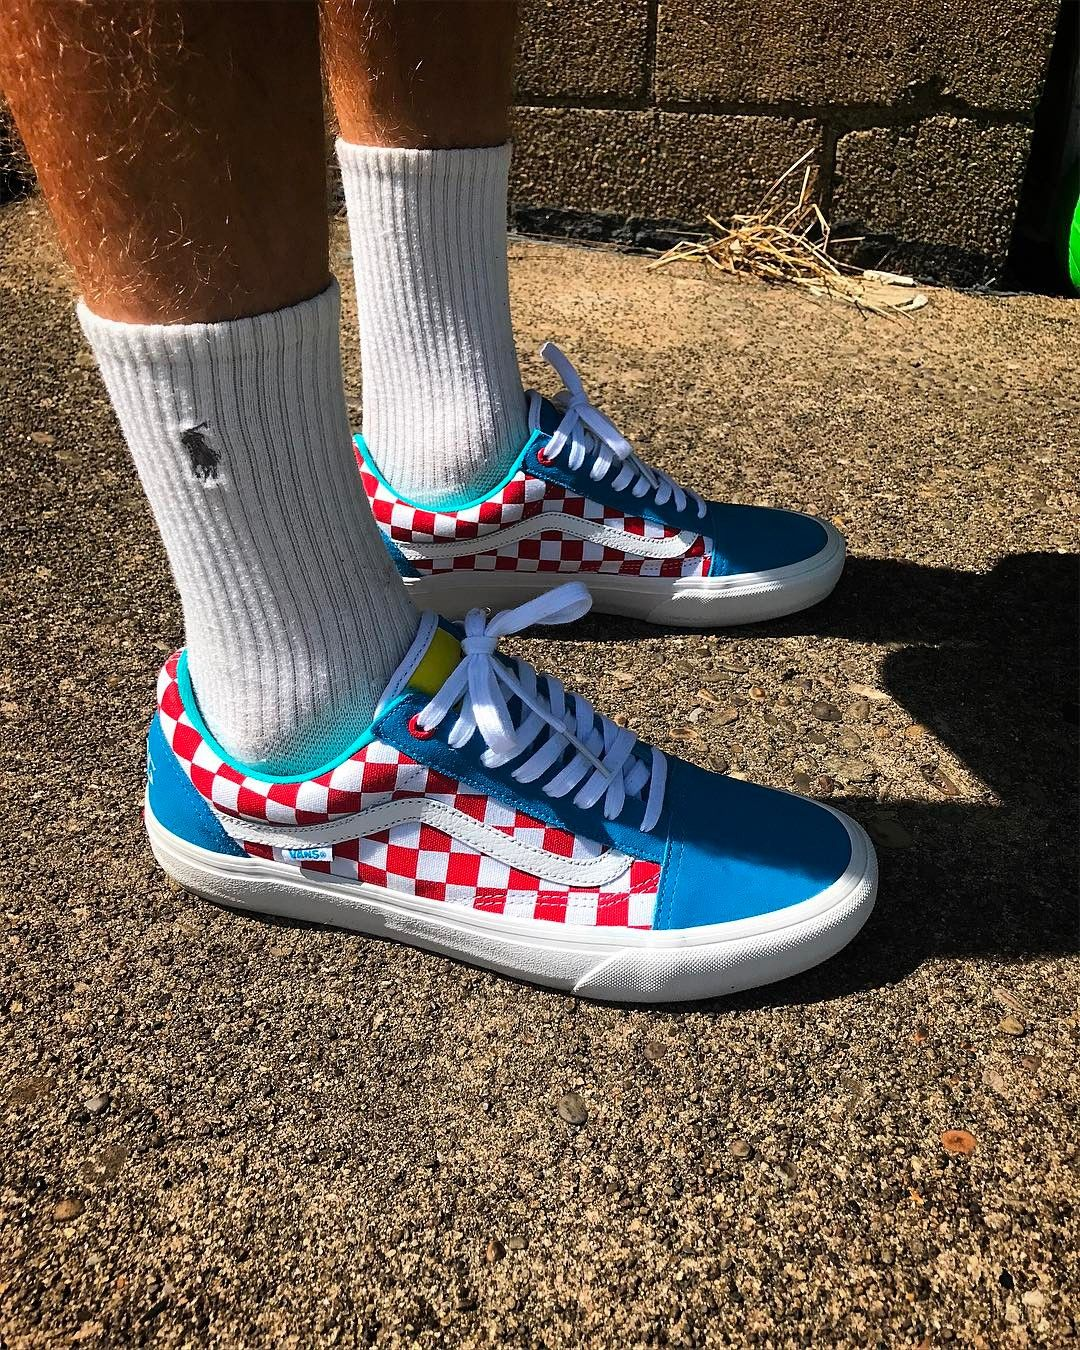 bfecd0b6f463 Golf Wang x VANS Old Skool Pro